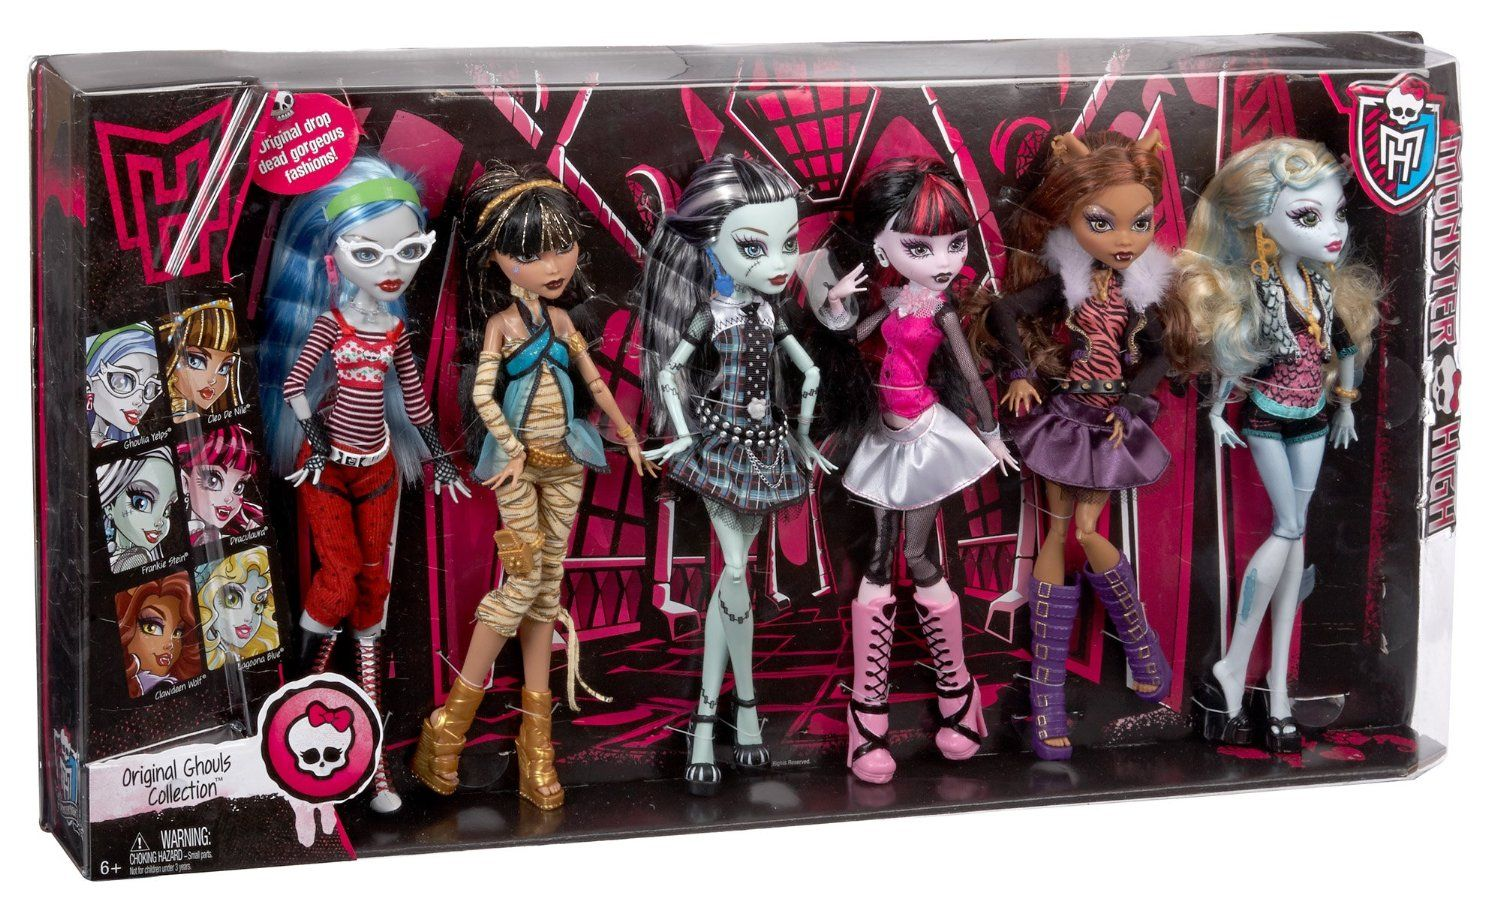 Amazon Com Monster High Dolls Original Ghouls Collection Toys Games Monster High Dolls Monster High Monster High Characters